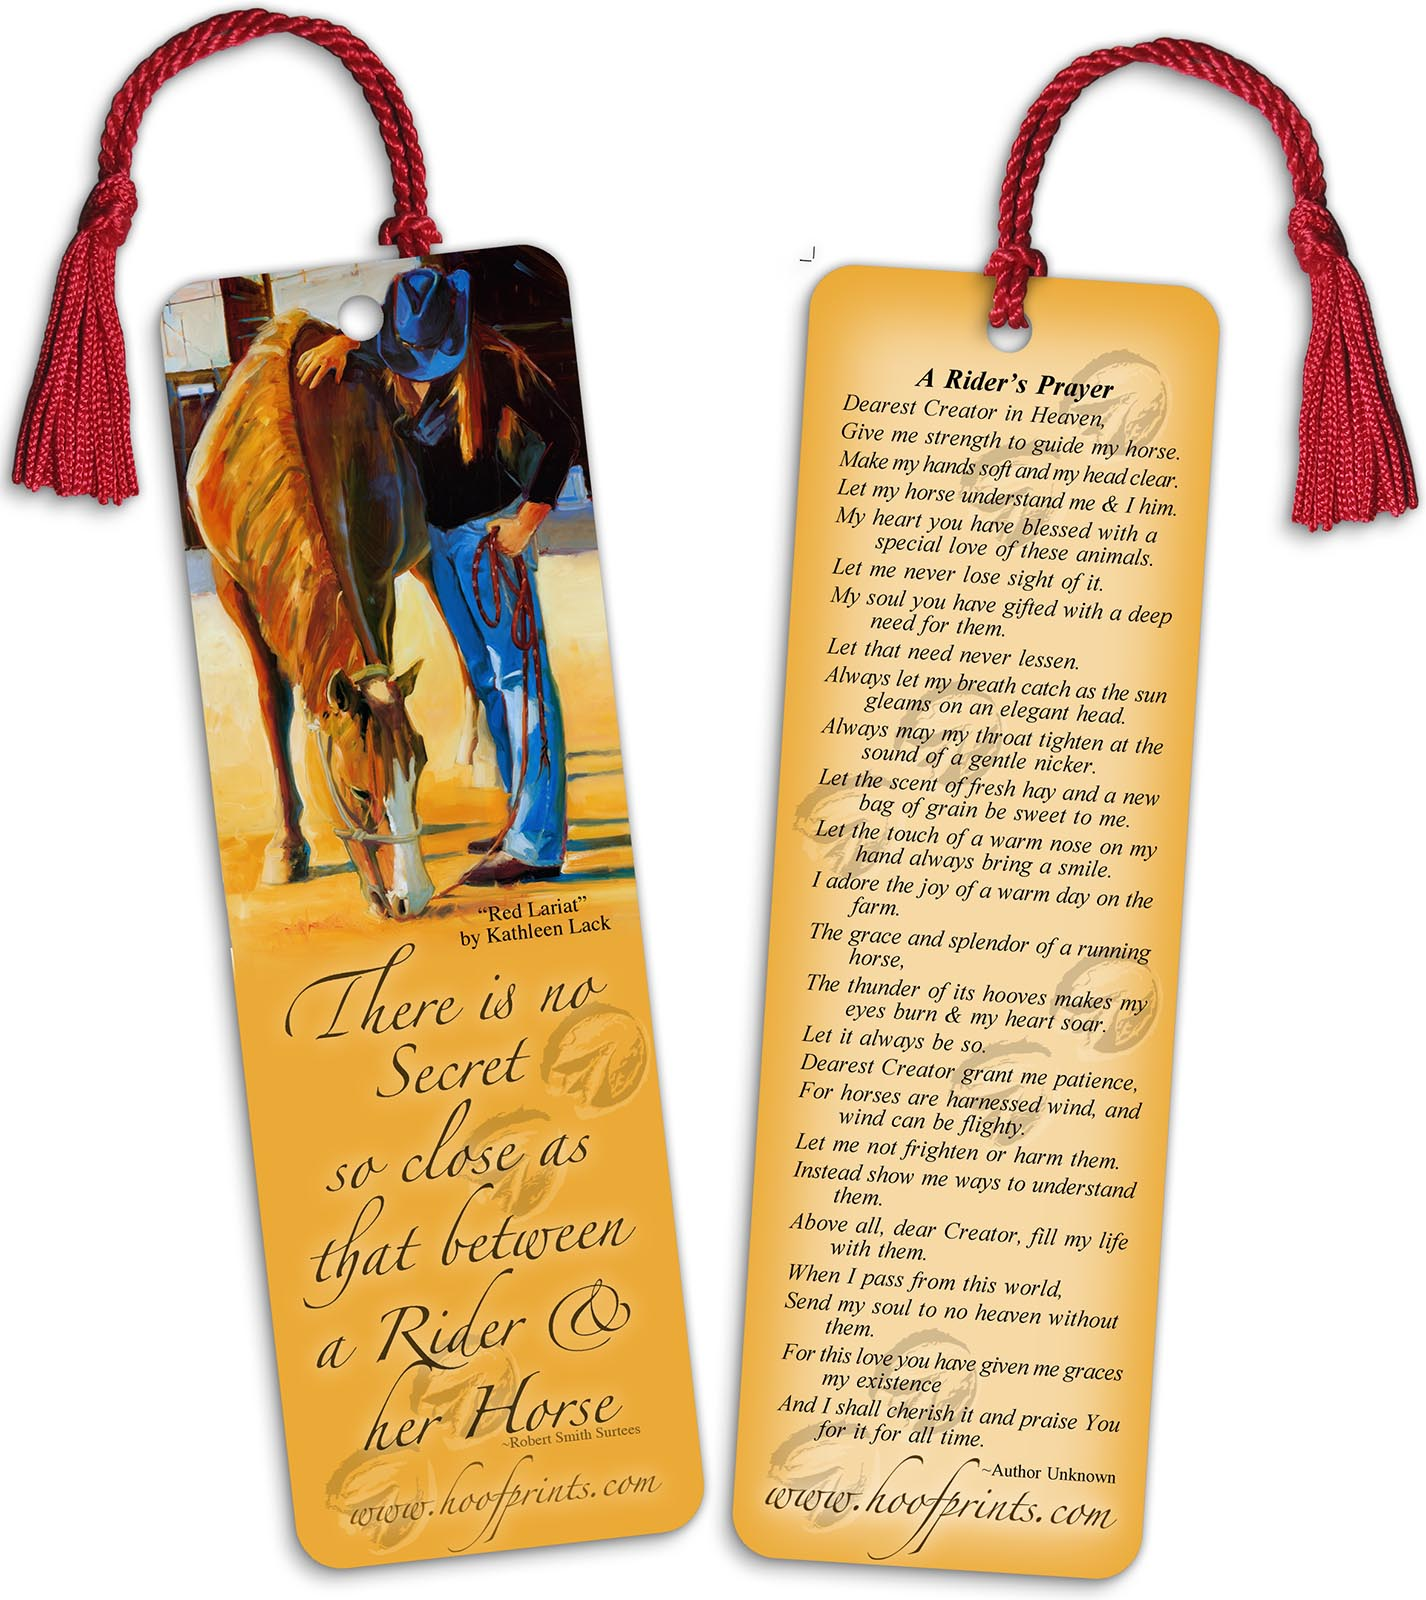 riders prayer bookmark with red tassel www